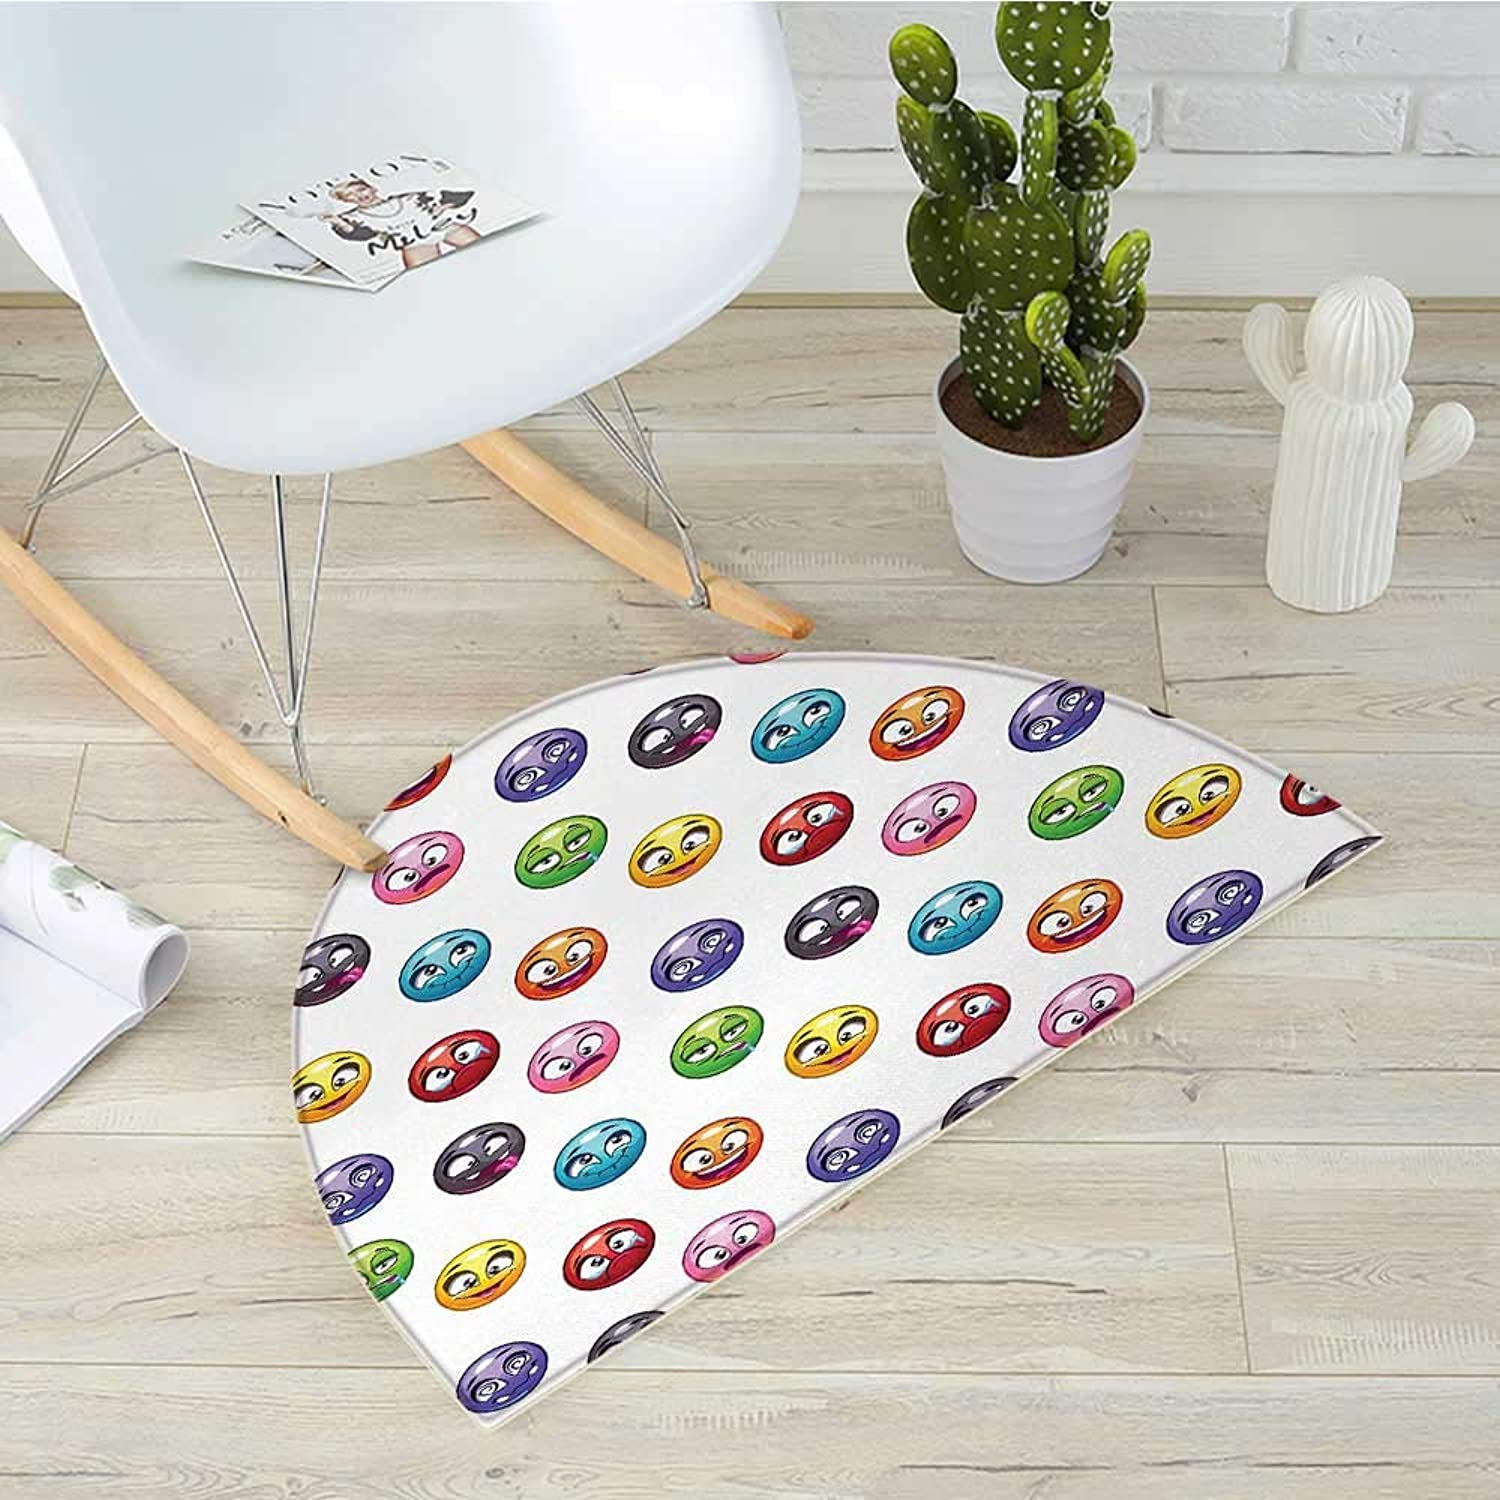 Emoji Semicircle Doormat Cartoon Faces in Different colors and Emotional States Crying Happy Tongue in Cheek Halfmoon doormats H 31.5  xD 47.2  Multicolor